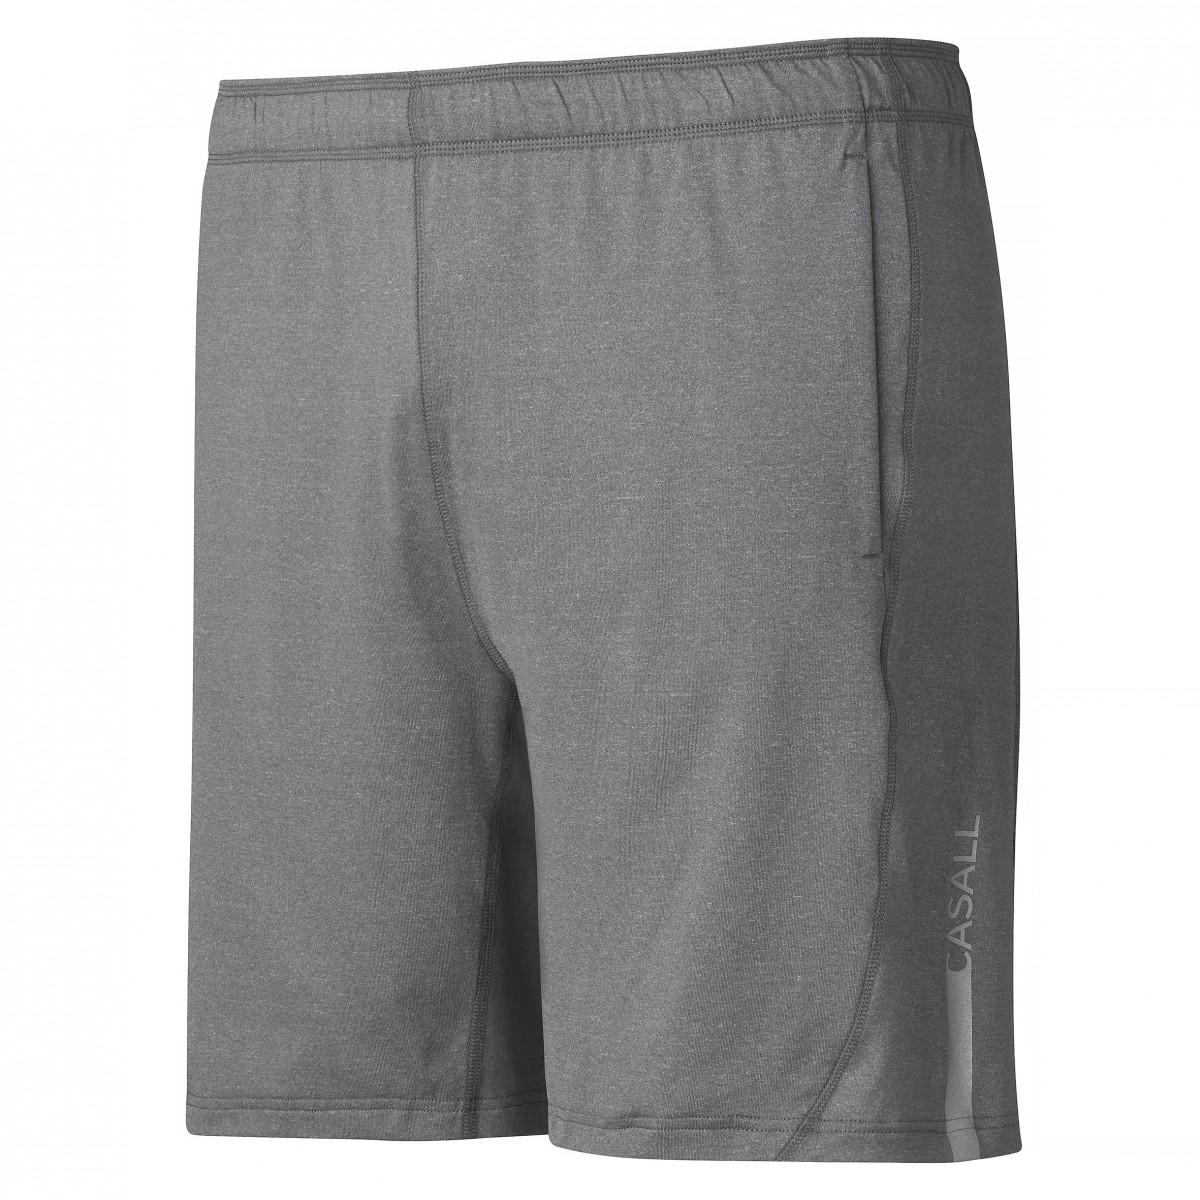 Casall Action Shorts